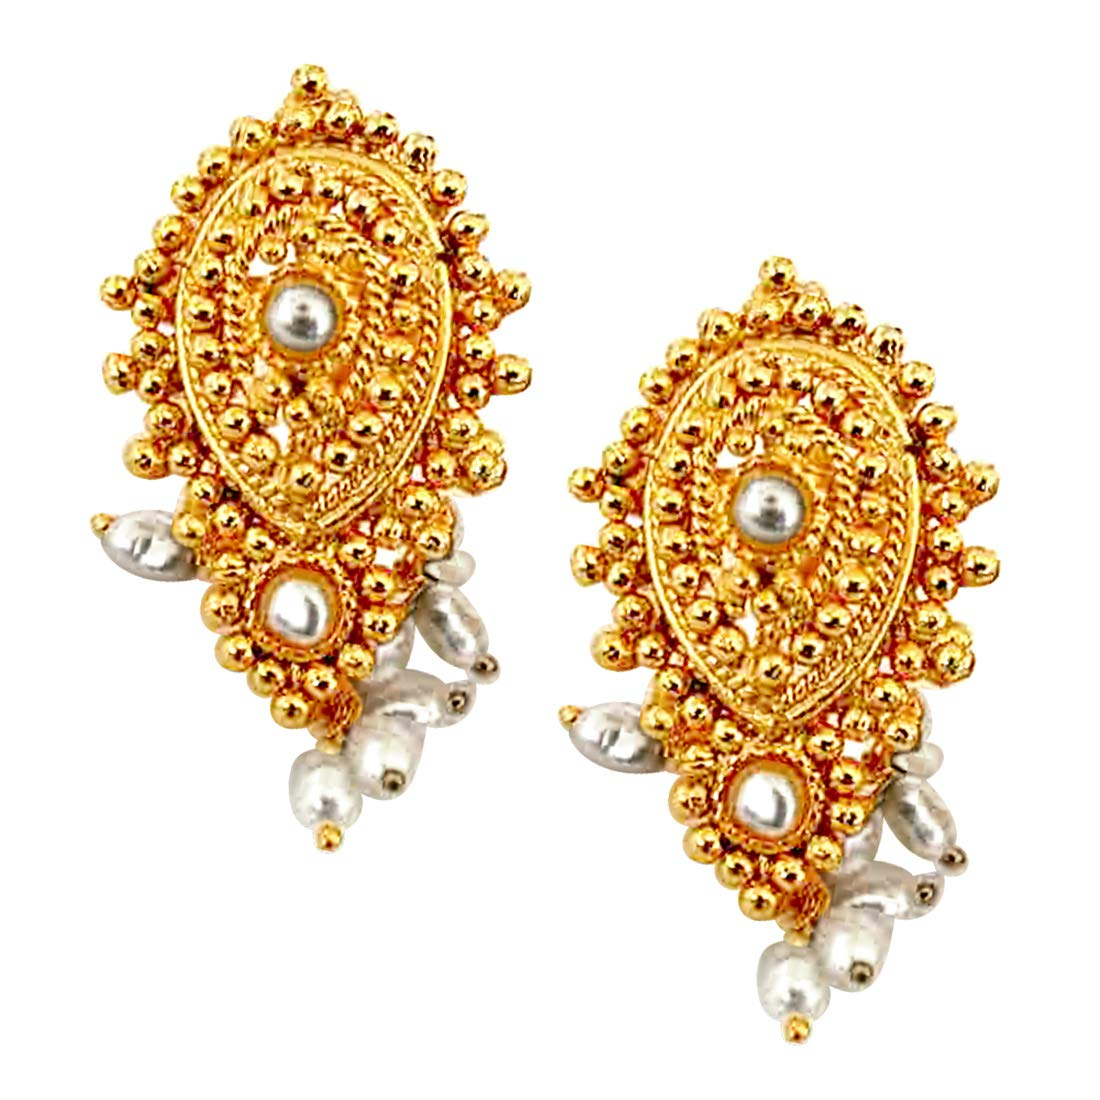 Temple Design Earrings